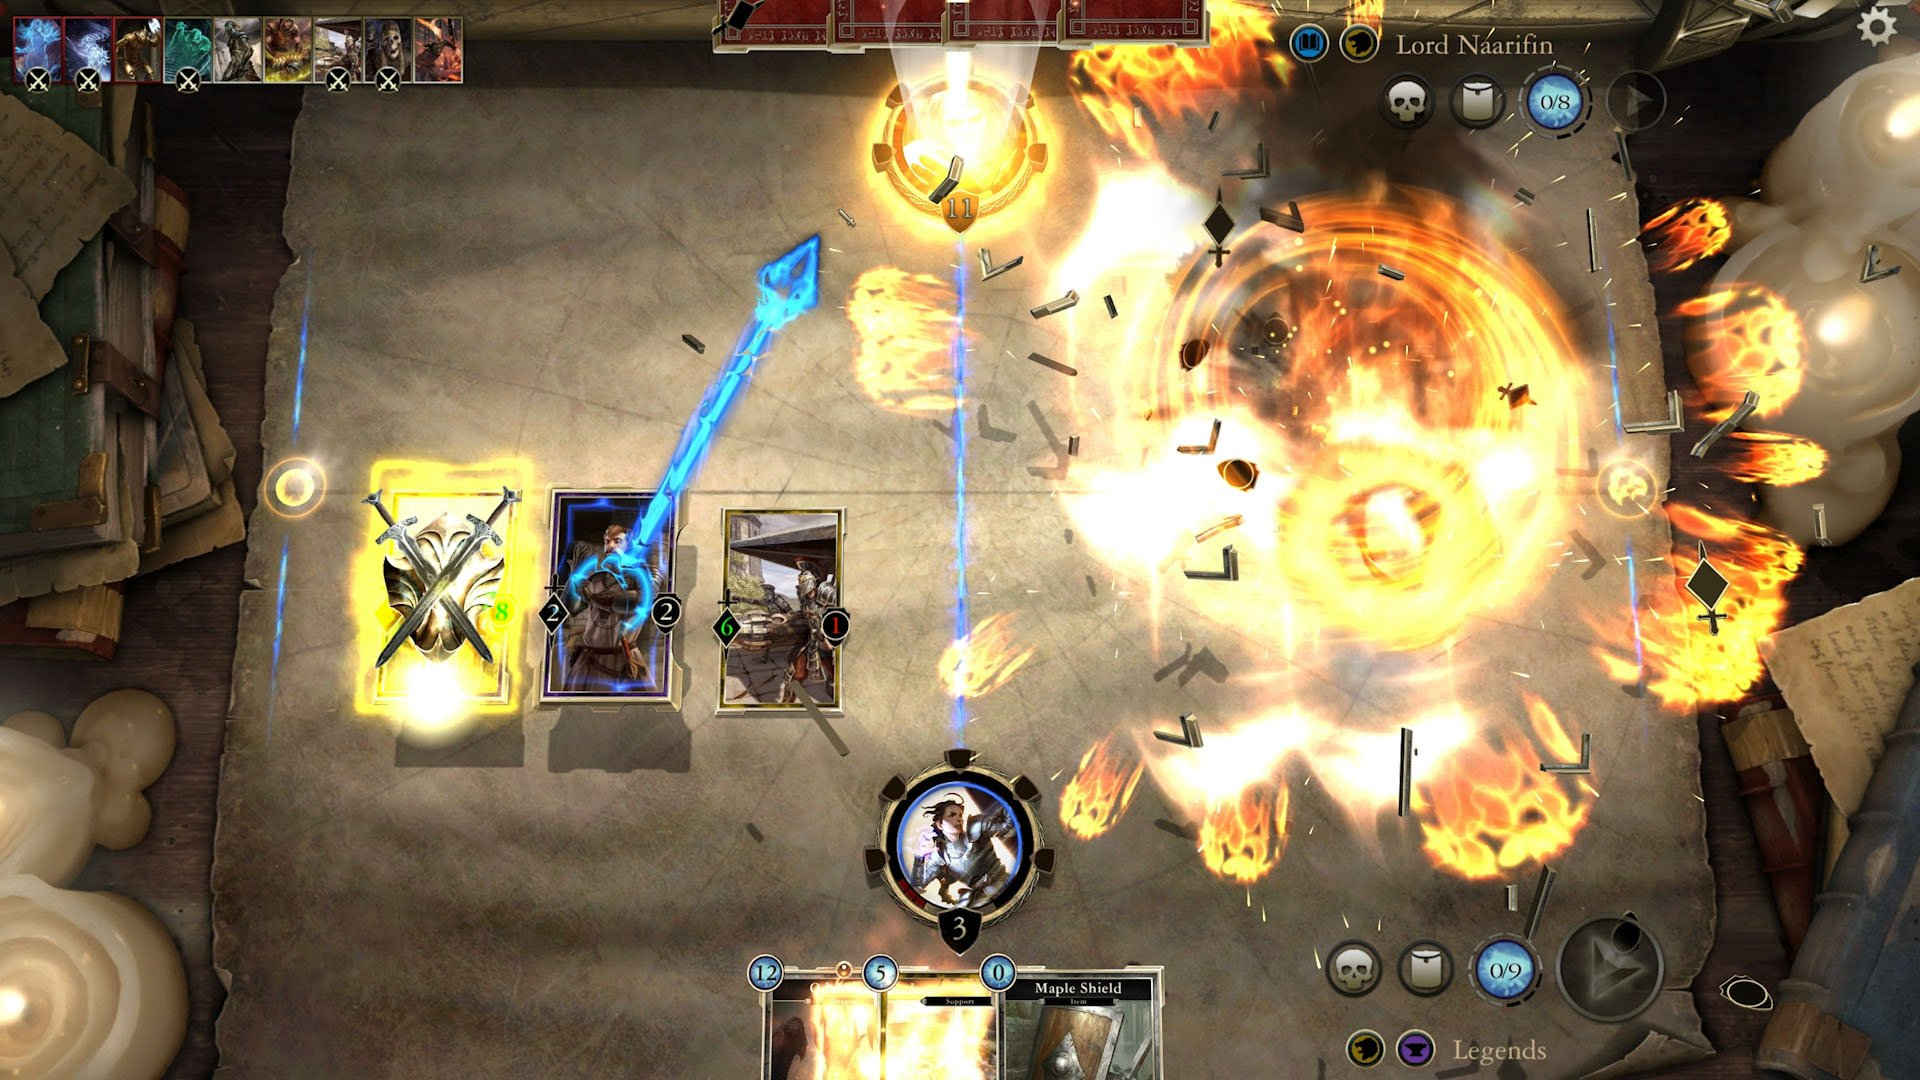 Modojo | Twitch Drops For The Elder Scrolls: Legends Will Be Doubled This Weekend